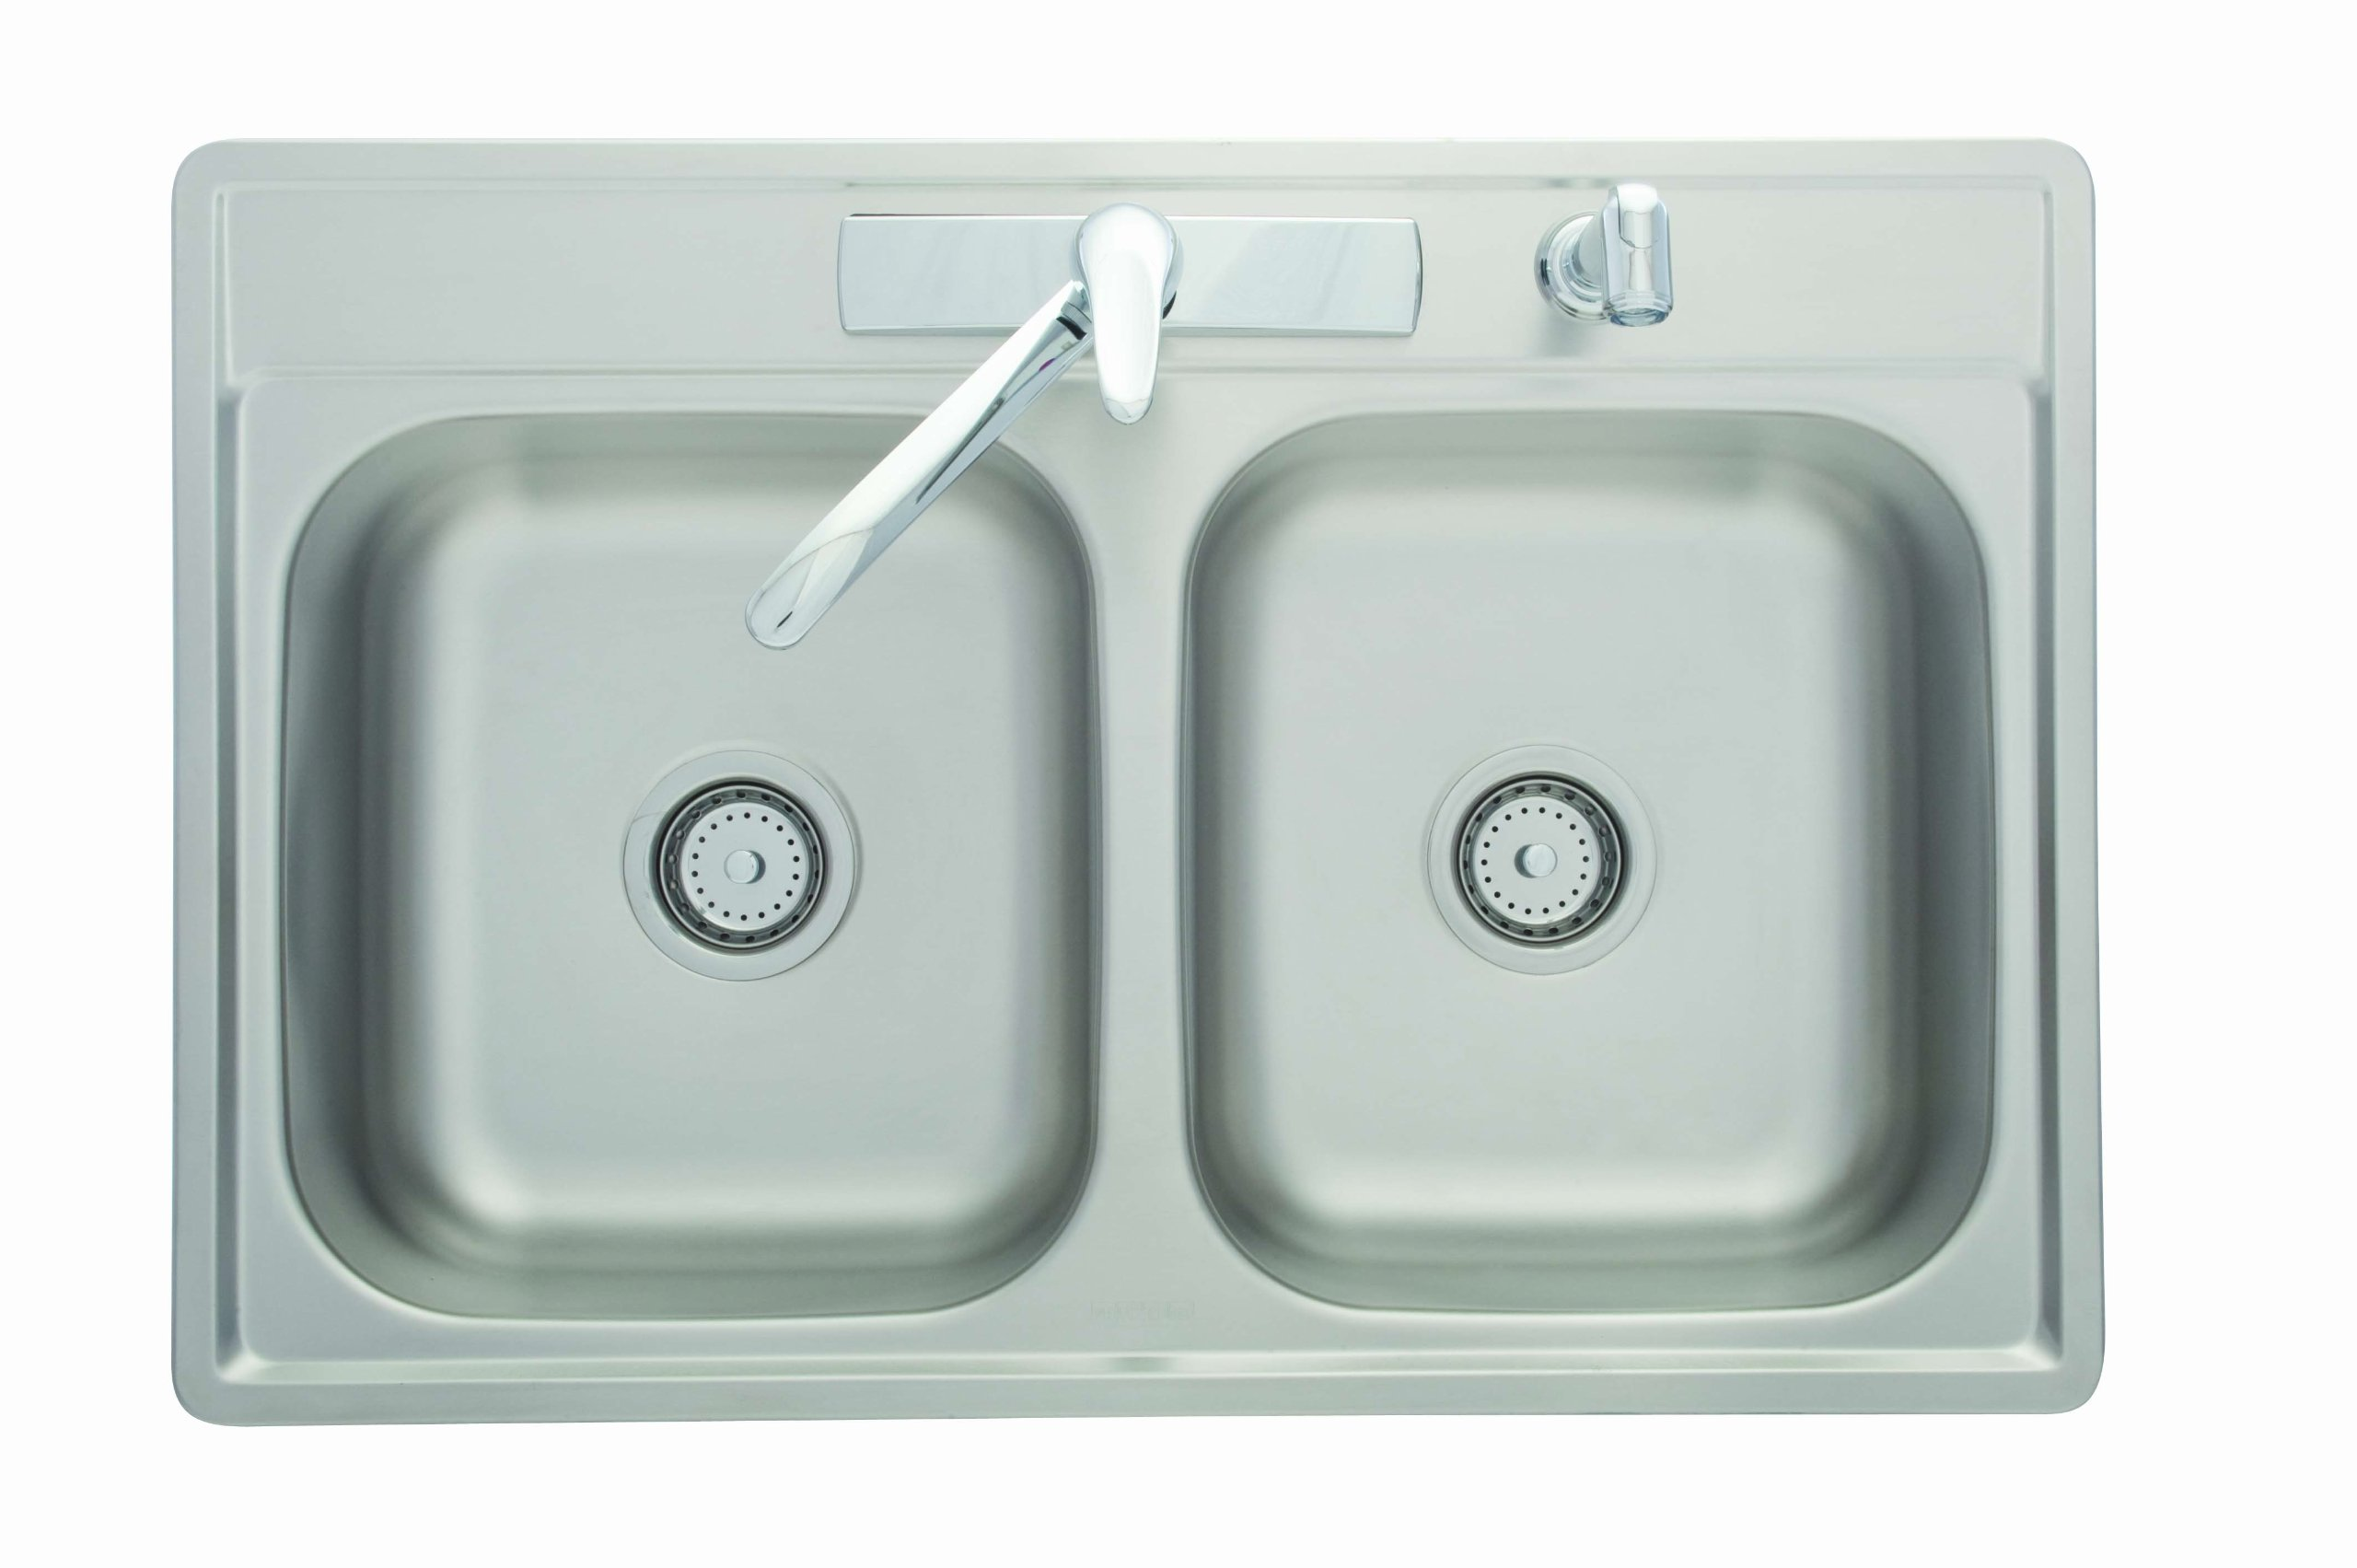 Kindred FDS704NB Double Bowl Stainless Steel 33x22in. Topmount Sink by Kindred